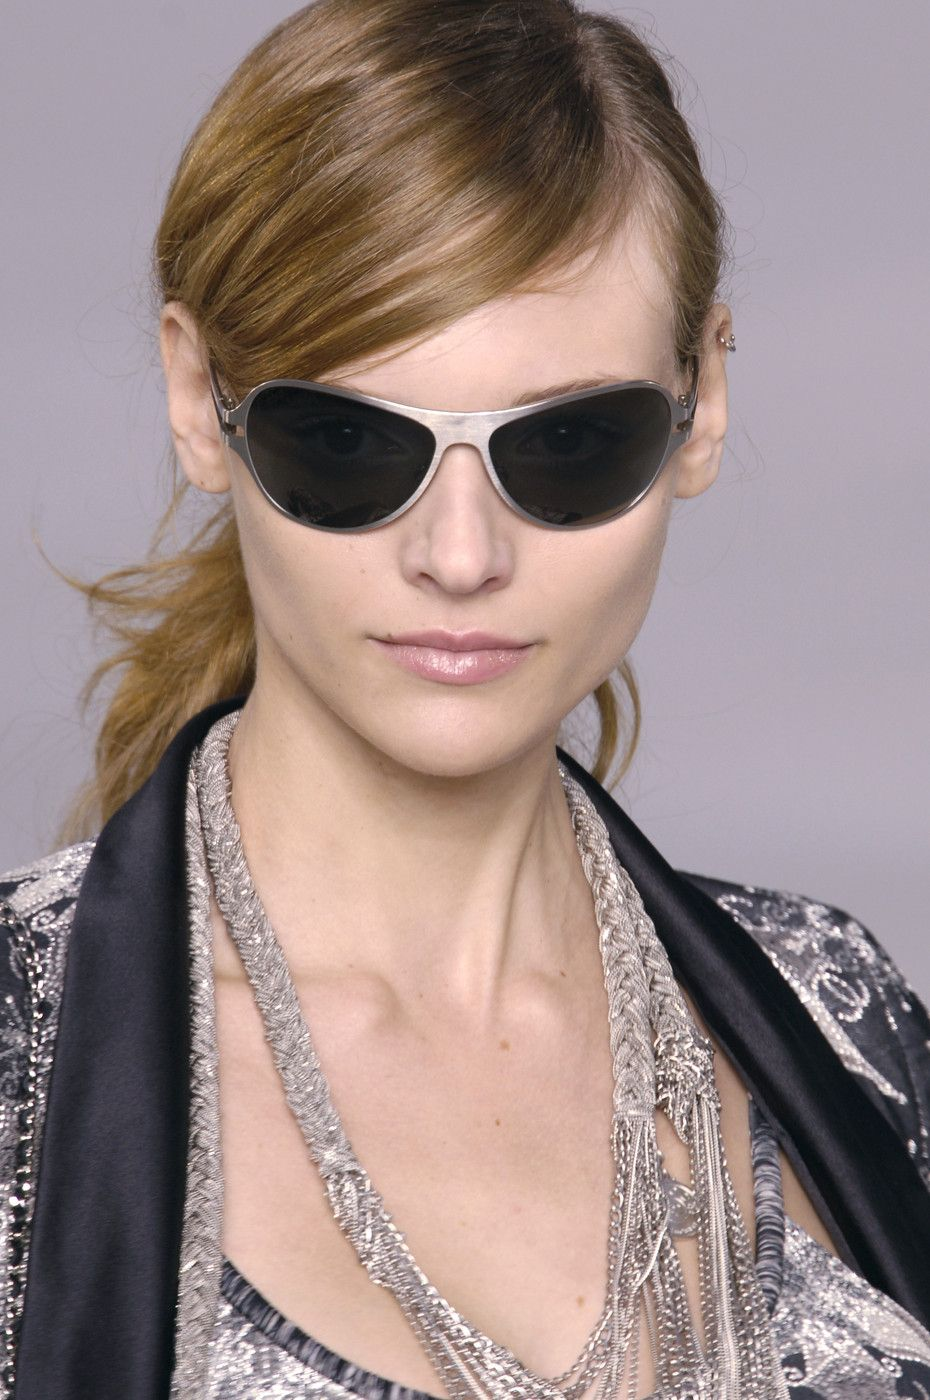 Chanel at Paris Fashion Week Spring 2006 (With images